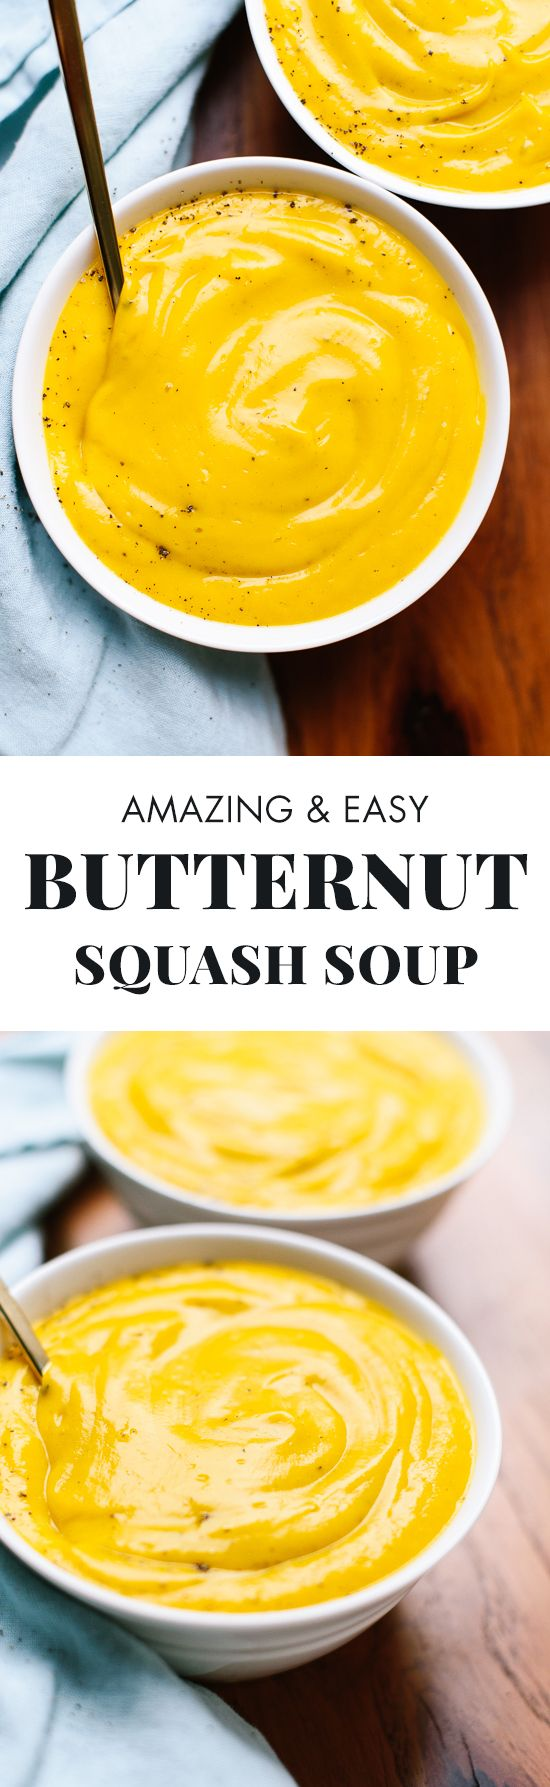 This roasted butternut squash soup is super creamy but light (and easy to make!). cookieandkate.com